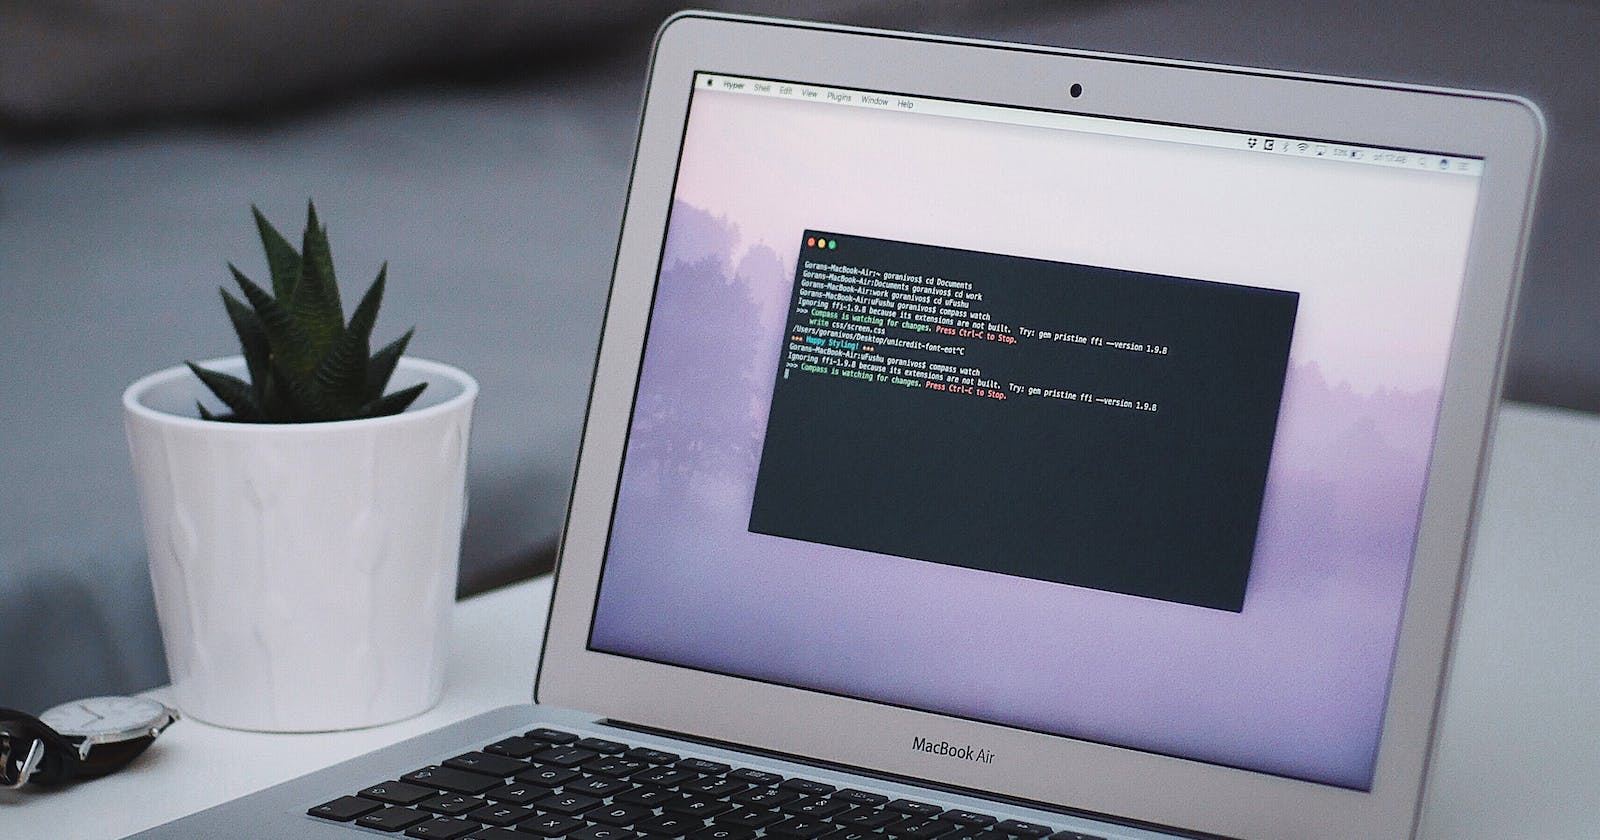 Clean Code: A guide for Beginners